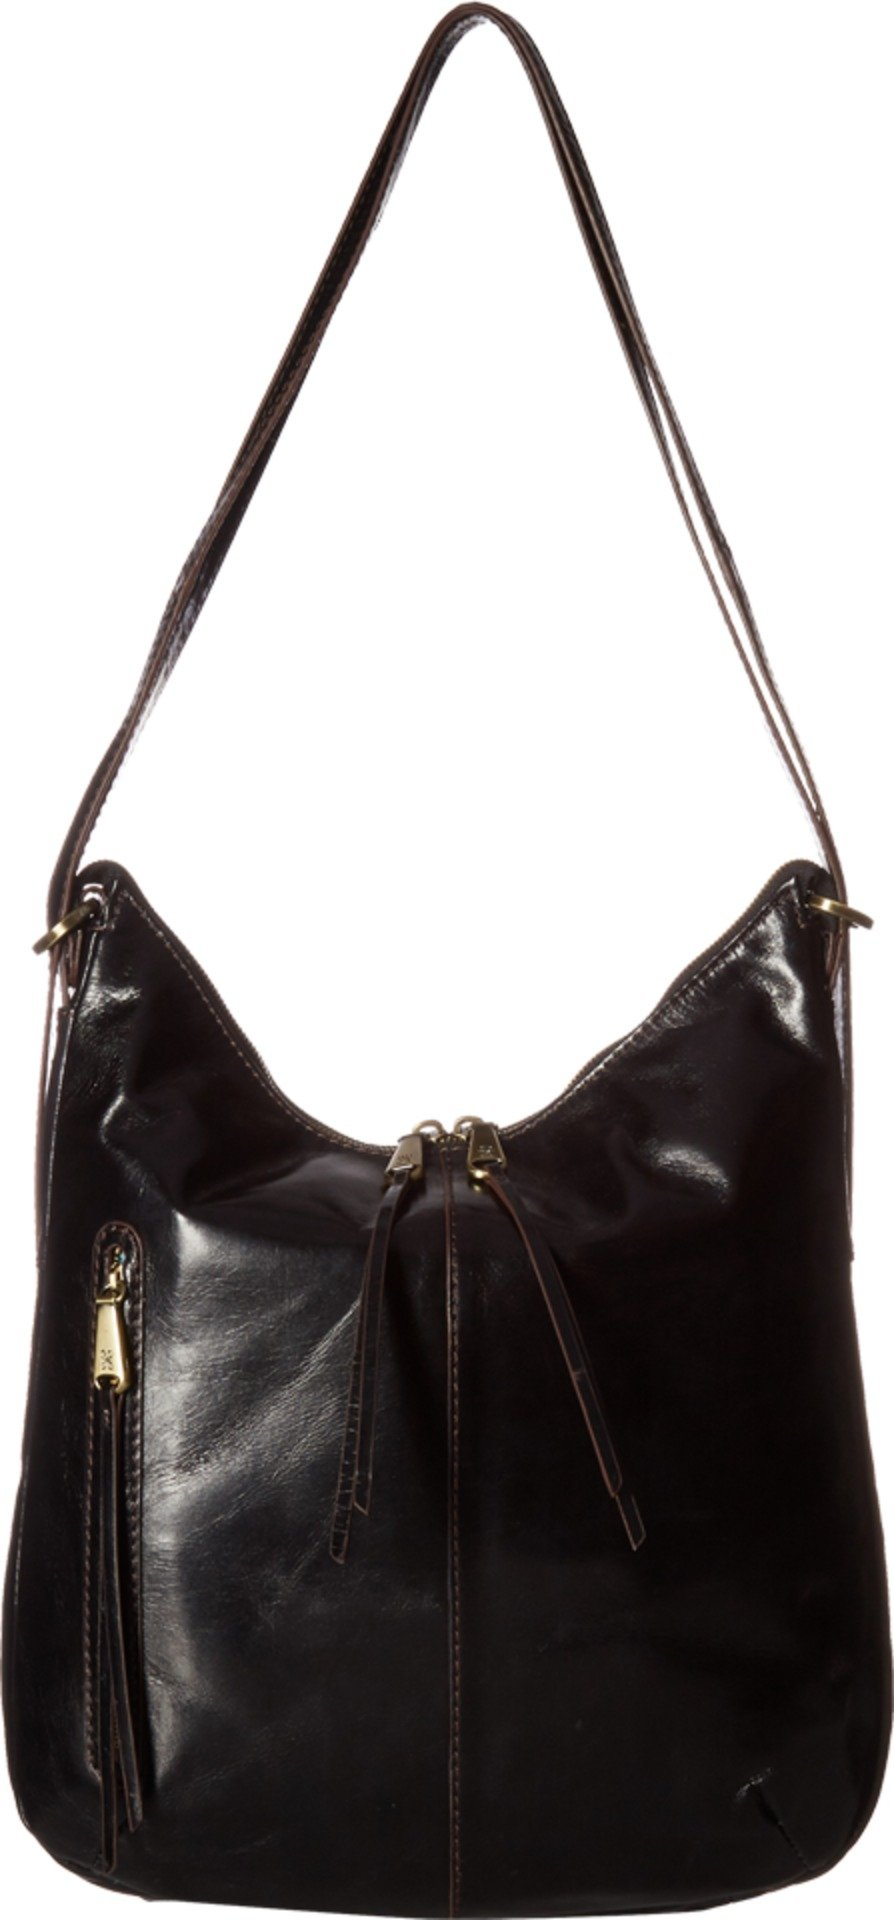 Hobo Women's Merrin Black Handbag